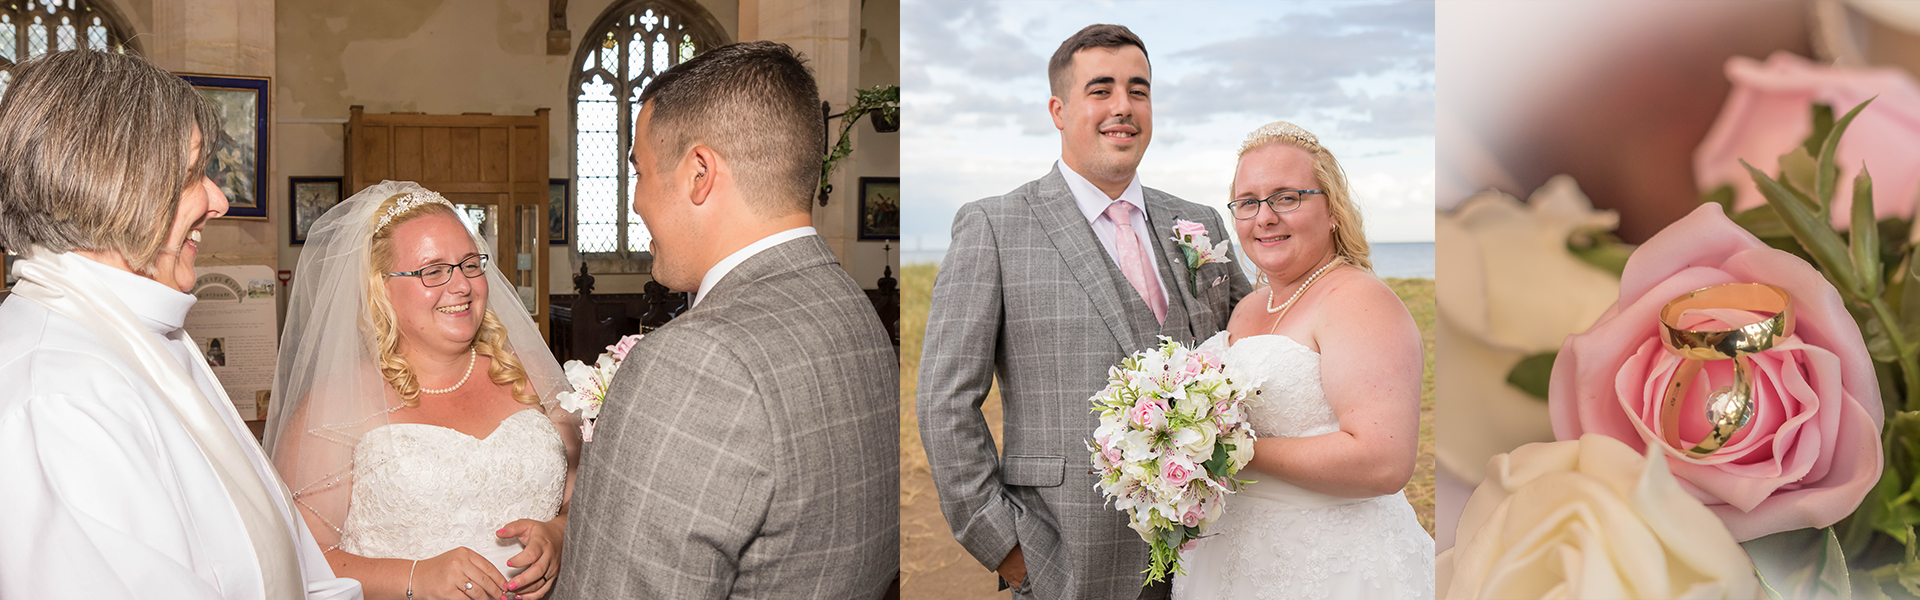 Weddings at The Links Hotel, Skegness, Lincolnshire